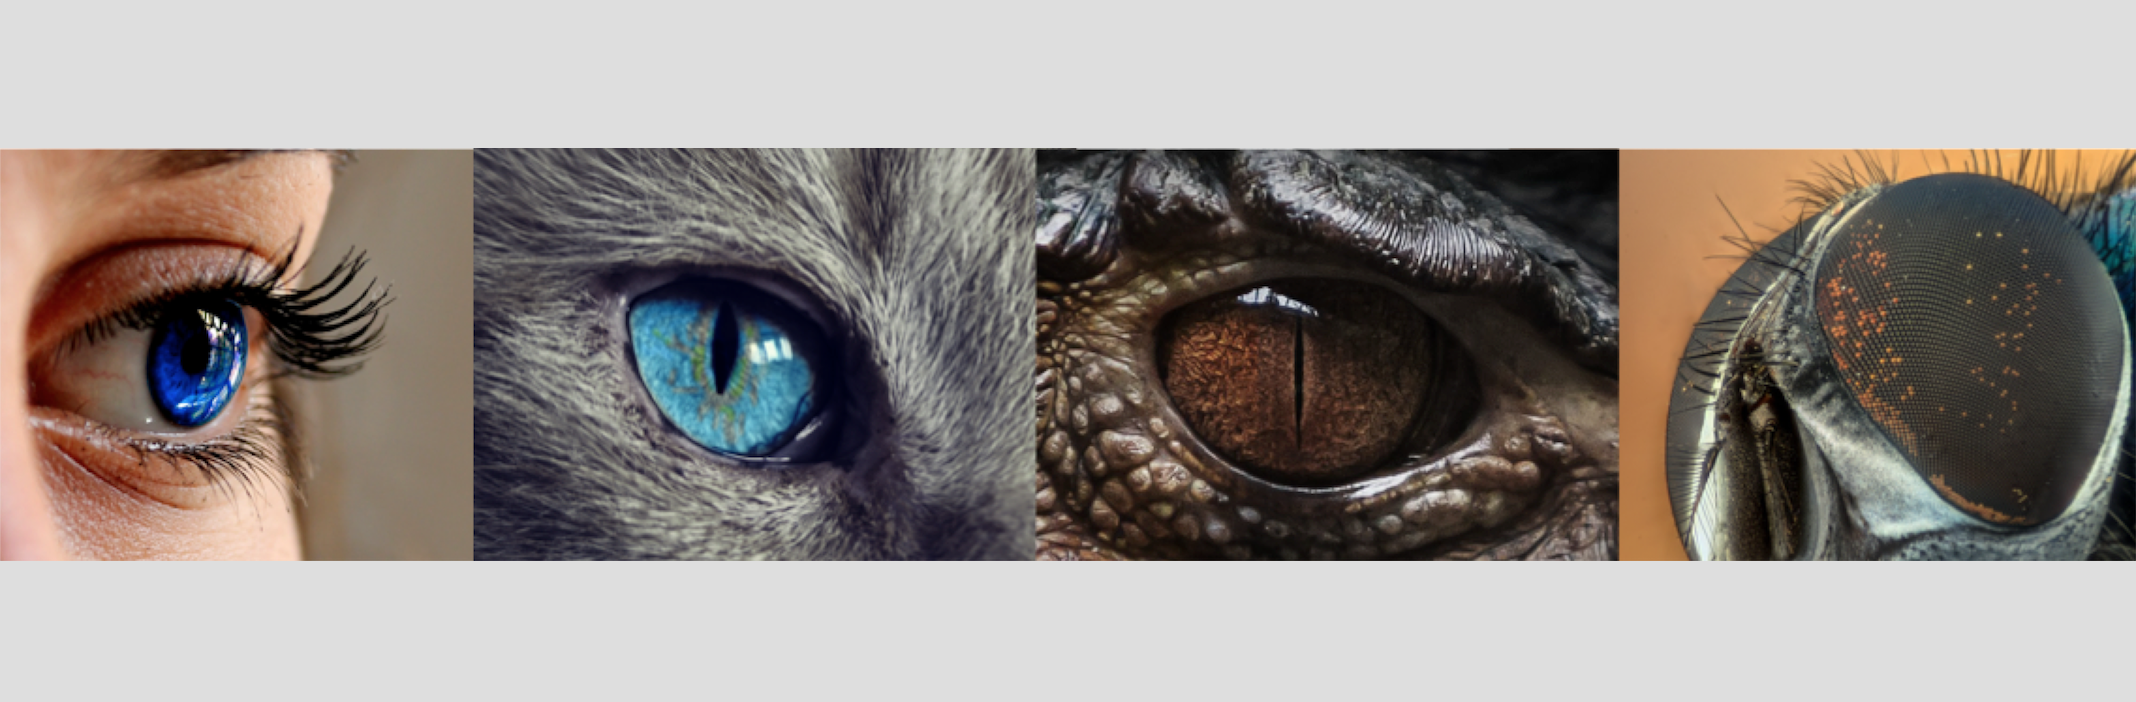 Eye Origins: How Evolution Could Produce a Sophisticated Eye